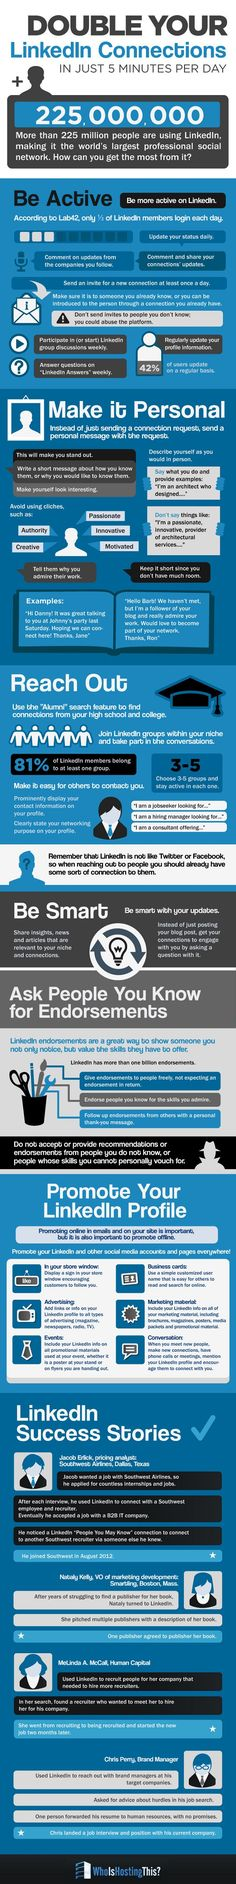 6 Tips for Expanding Your LinkedIn Network